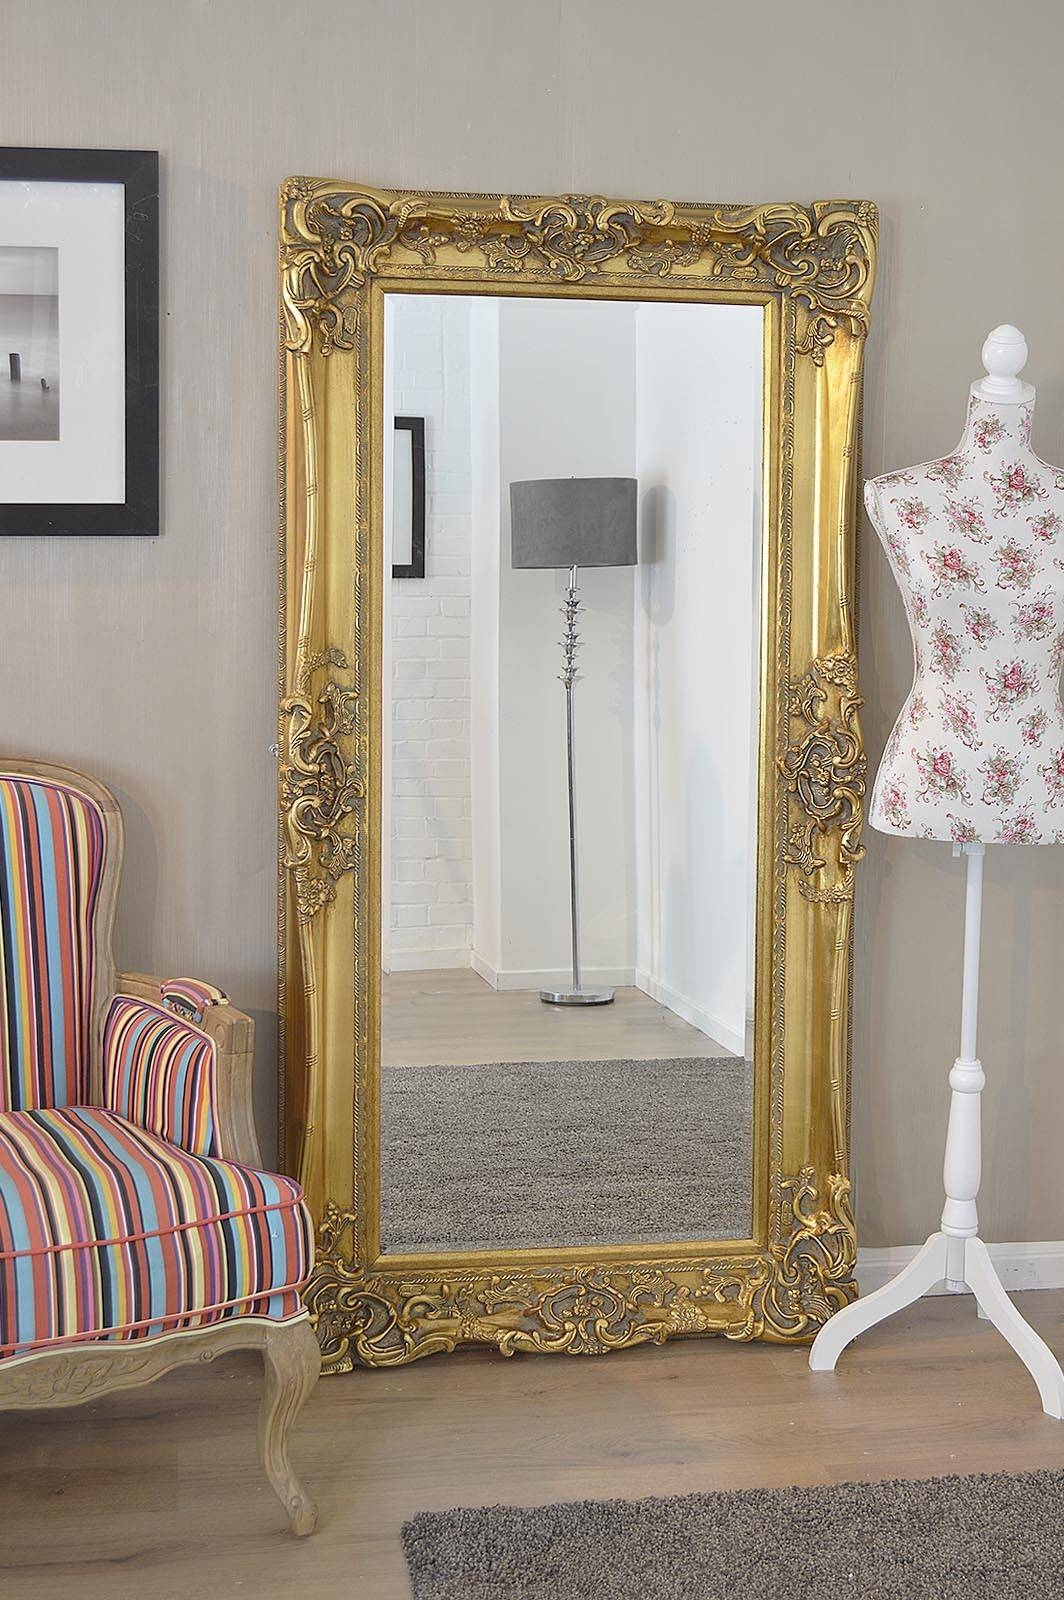 Ornate Mirrors For Sale 125 Awesome Exterior With Large Wall within Large Ornate Wall Mirrors (Image 12 of 15)